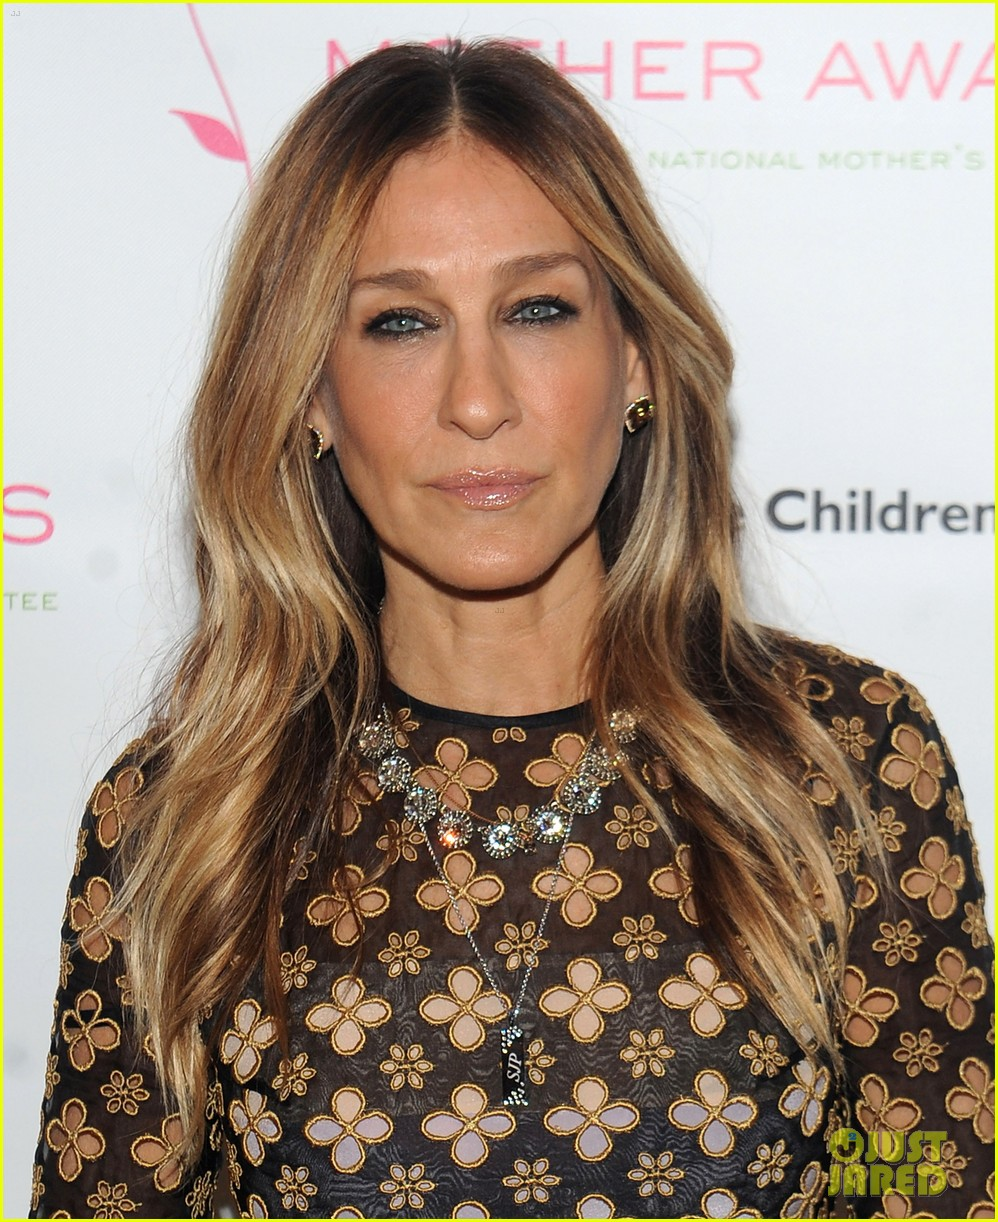 Sarah jessica parker s weekend plans include this book photo 3648883